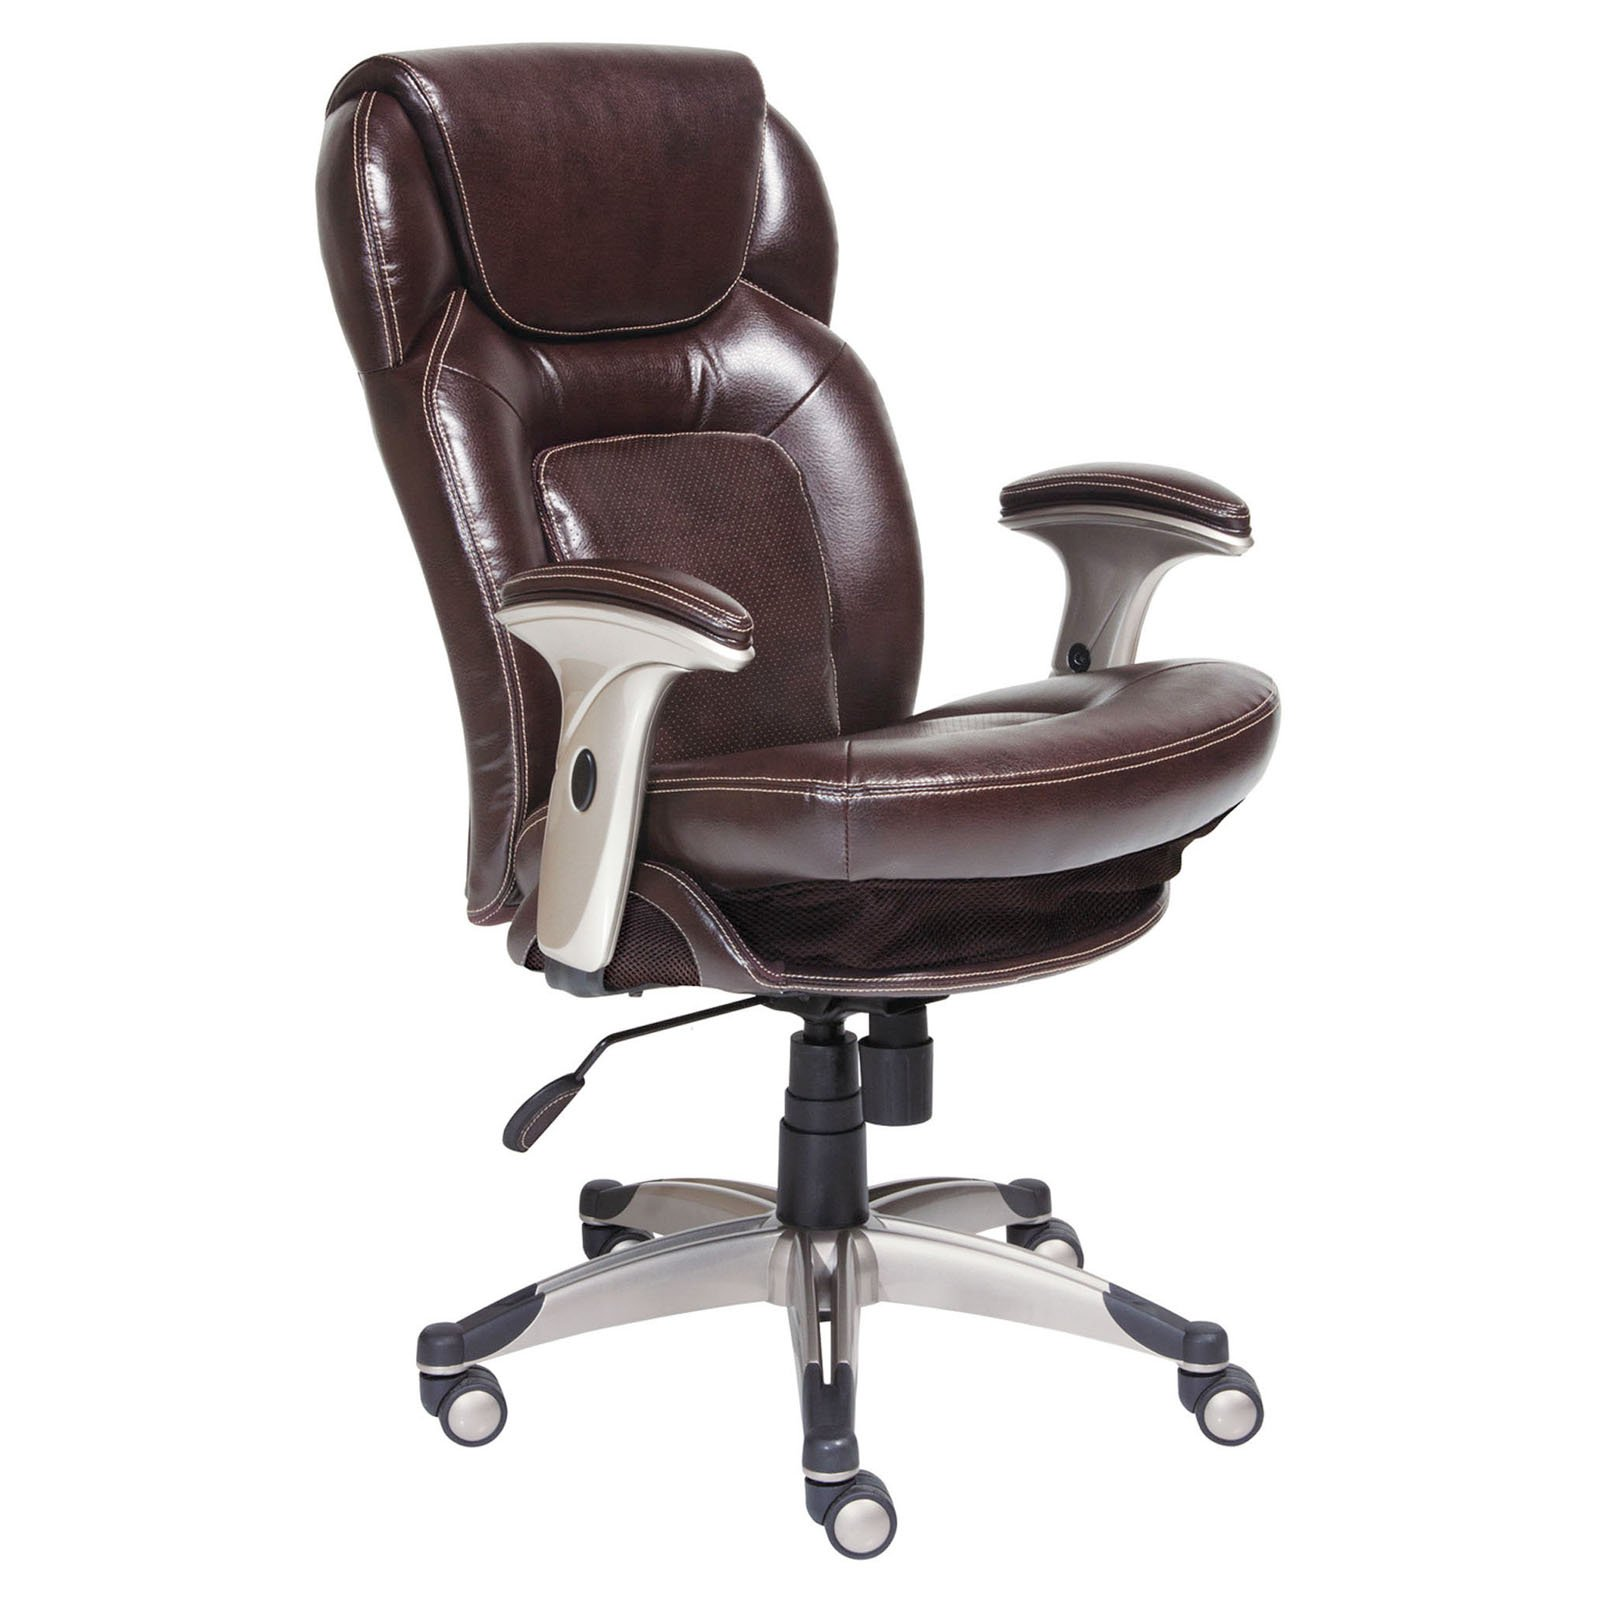 office chair quality wood desk chairs with wheels serta back in motion health and wellness mid bonded leather frye chocolate walmart com